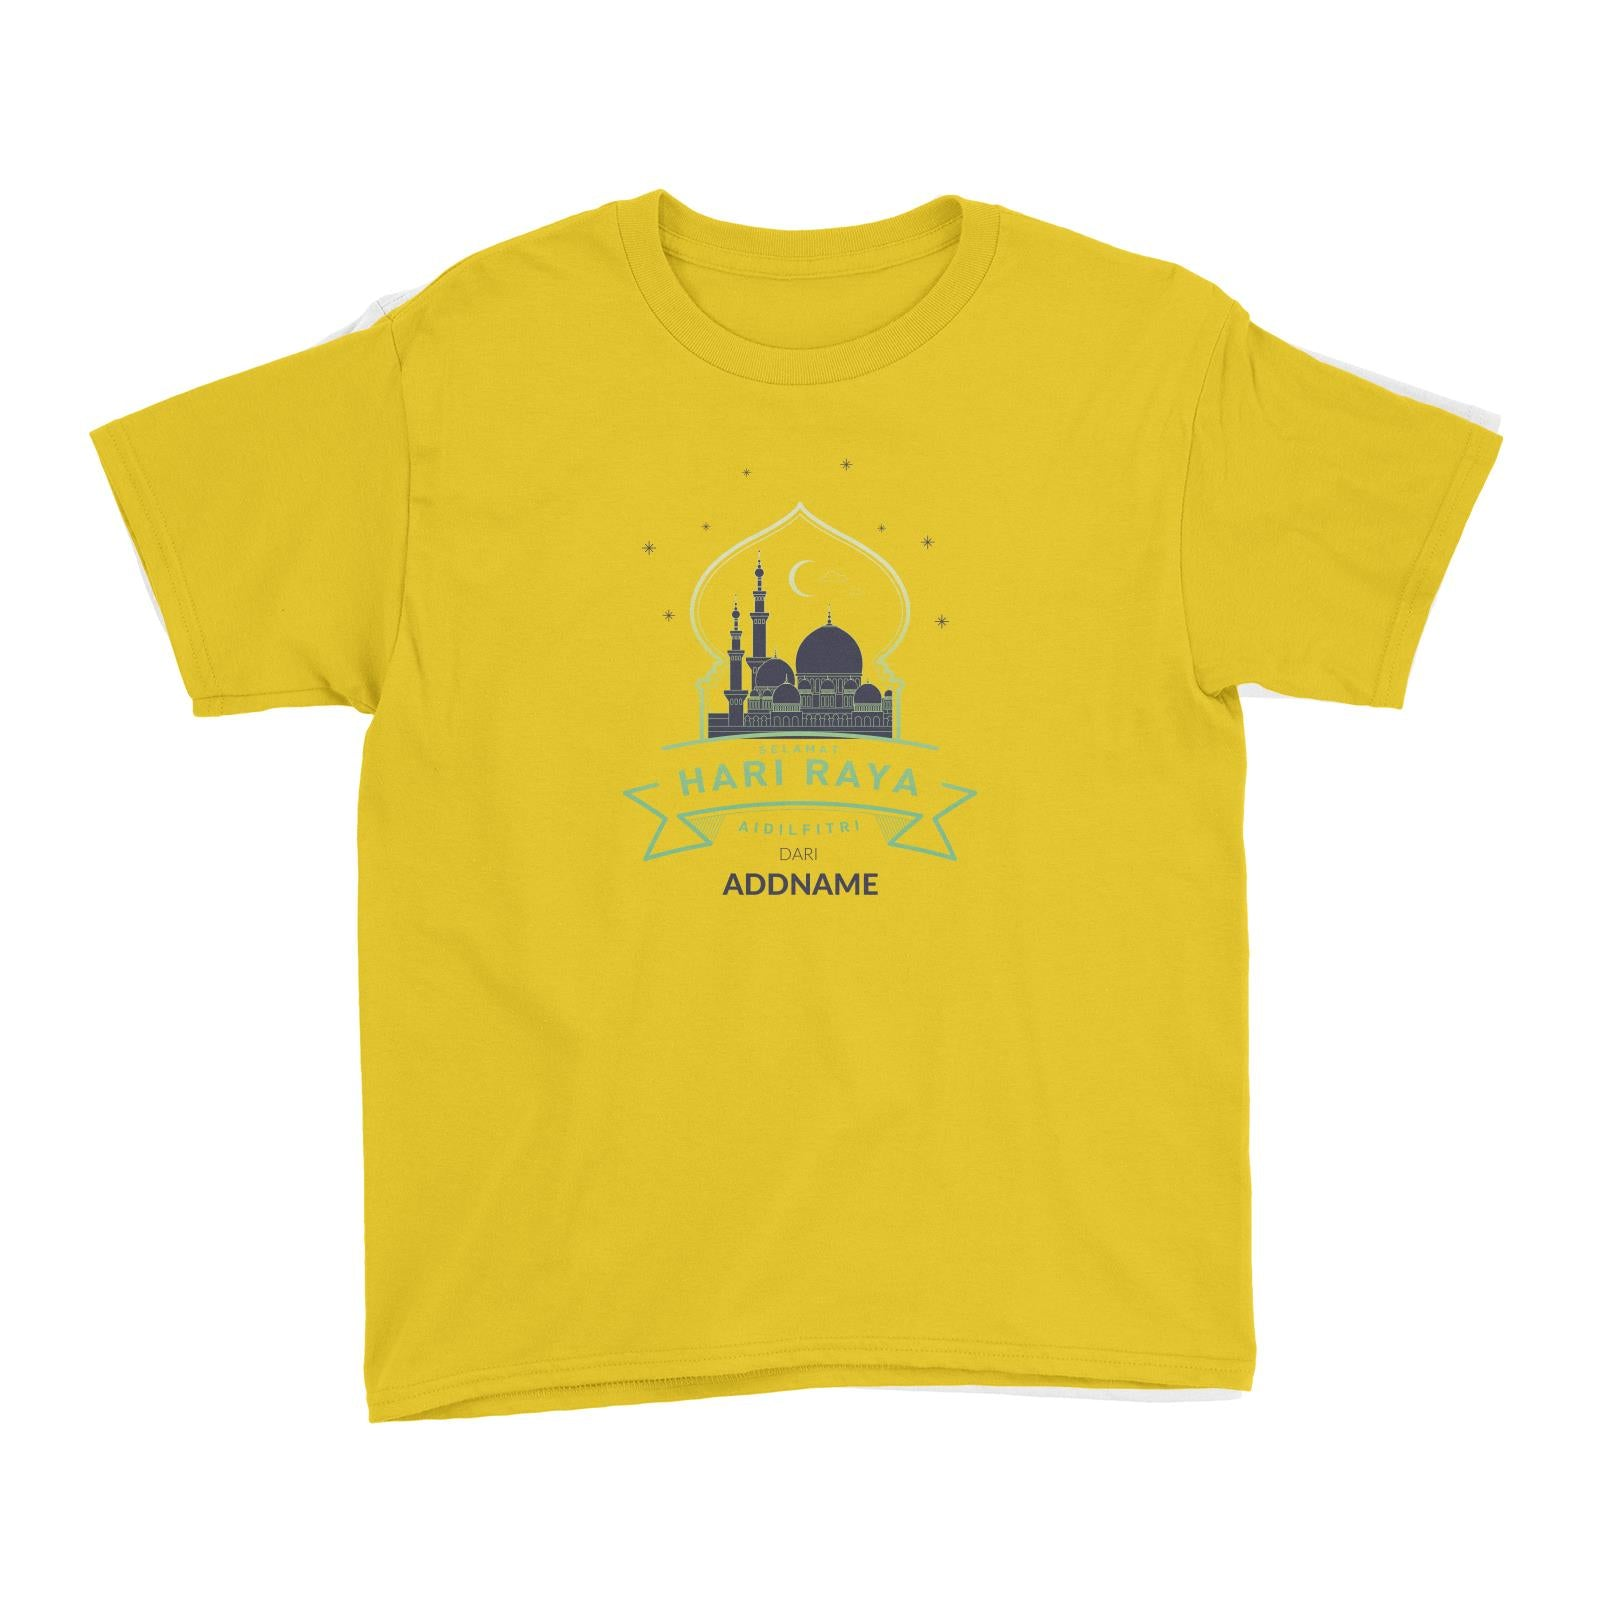 Hari Raya Aidilfitri Dari Kid's T-Shirt  Personalizable Designs Gradient Mosque